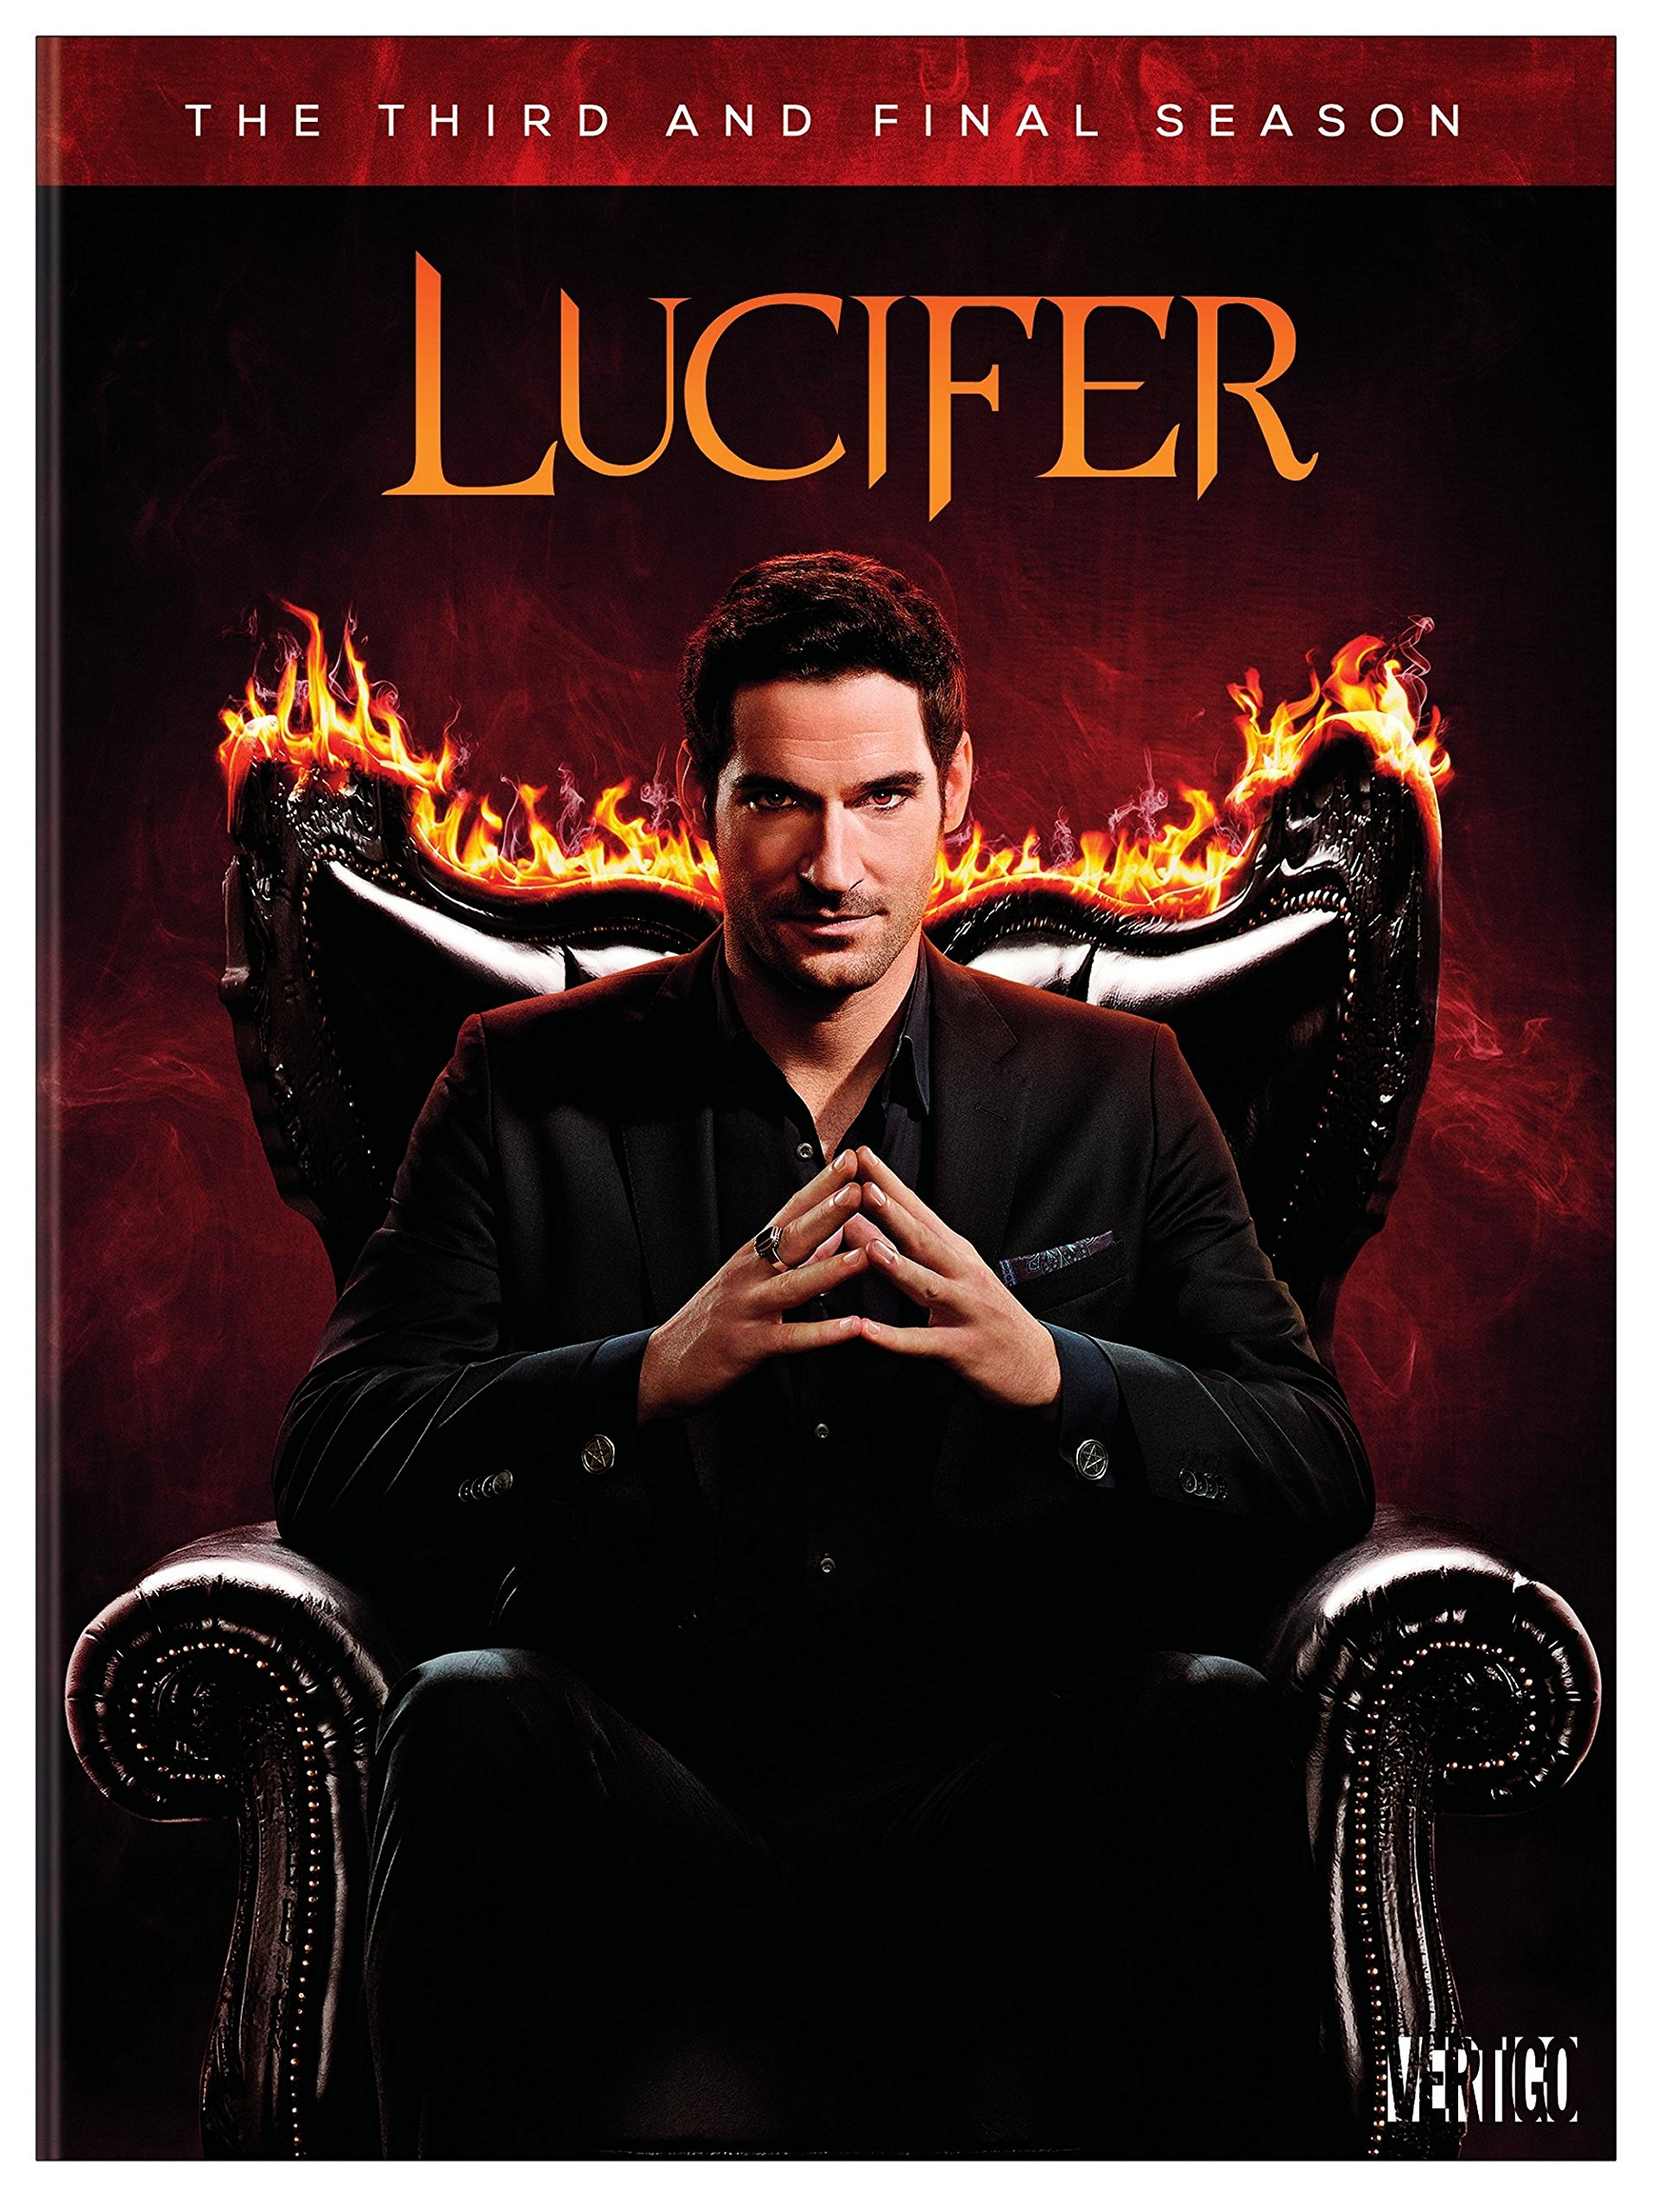 DVD : Lucifer: The Complete Third And Final Season (Boxed Set, Amaray Case, 5PC)